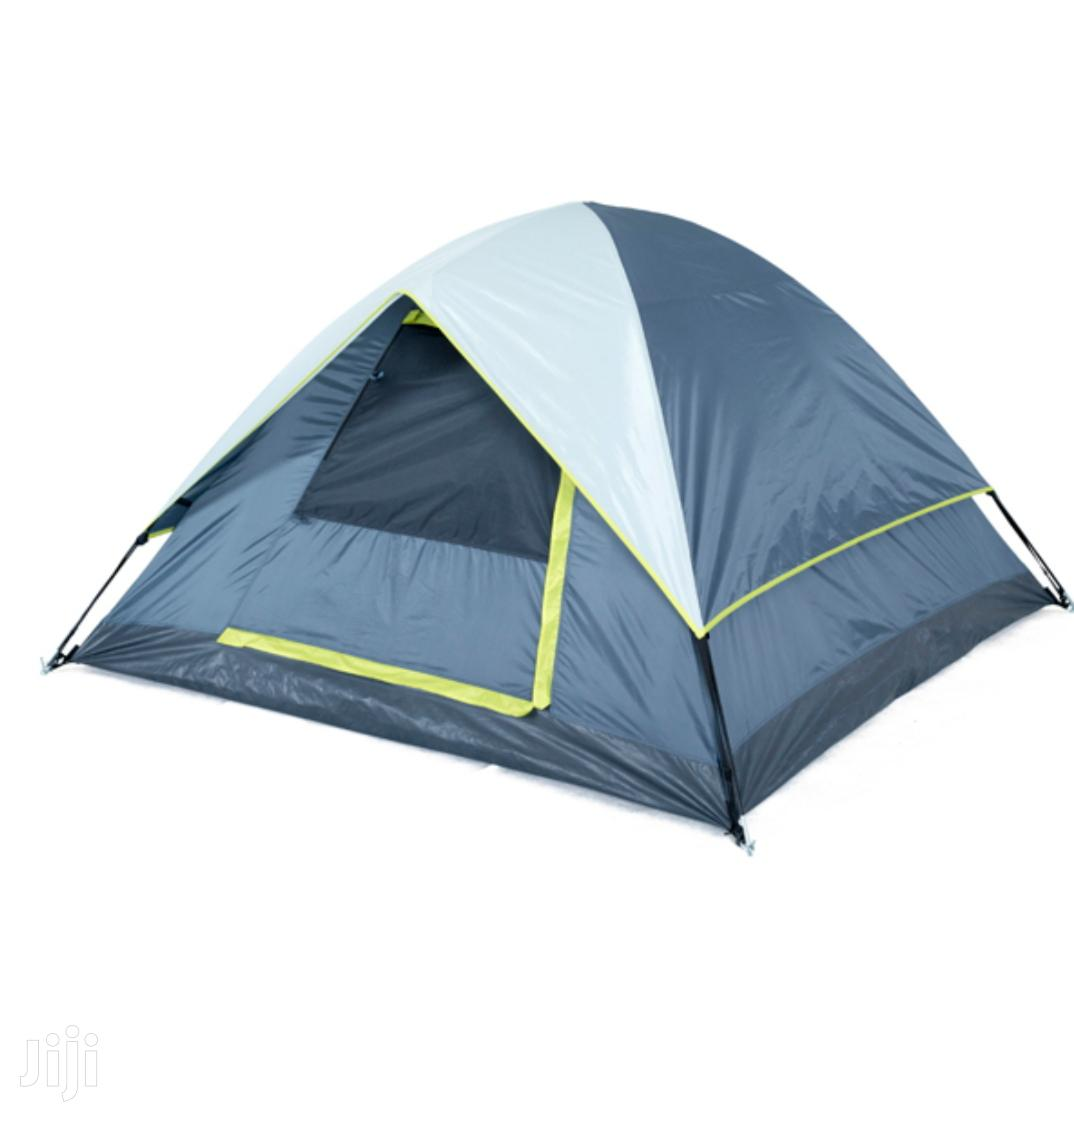 Campmaster Camp Dome 3 Sleeper Tent